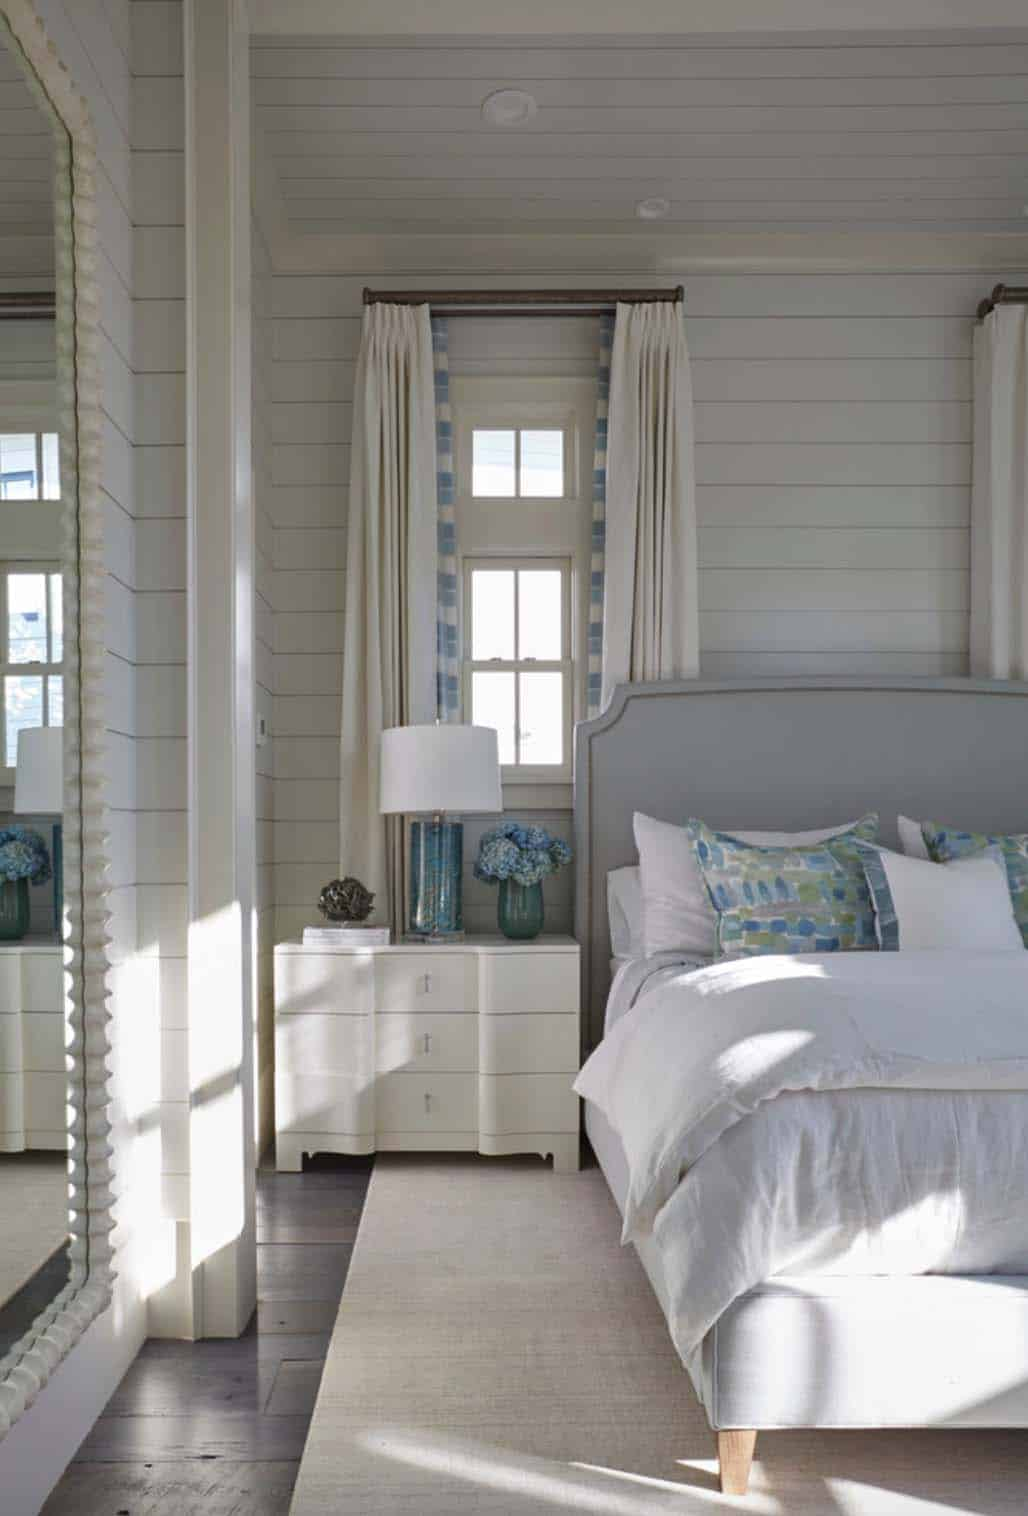 Florida Beach House-Geoff Chick-16-1 Kindesign